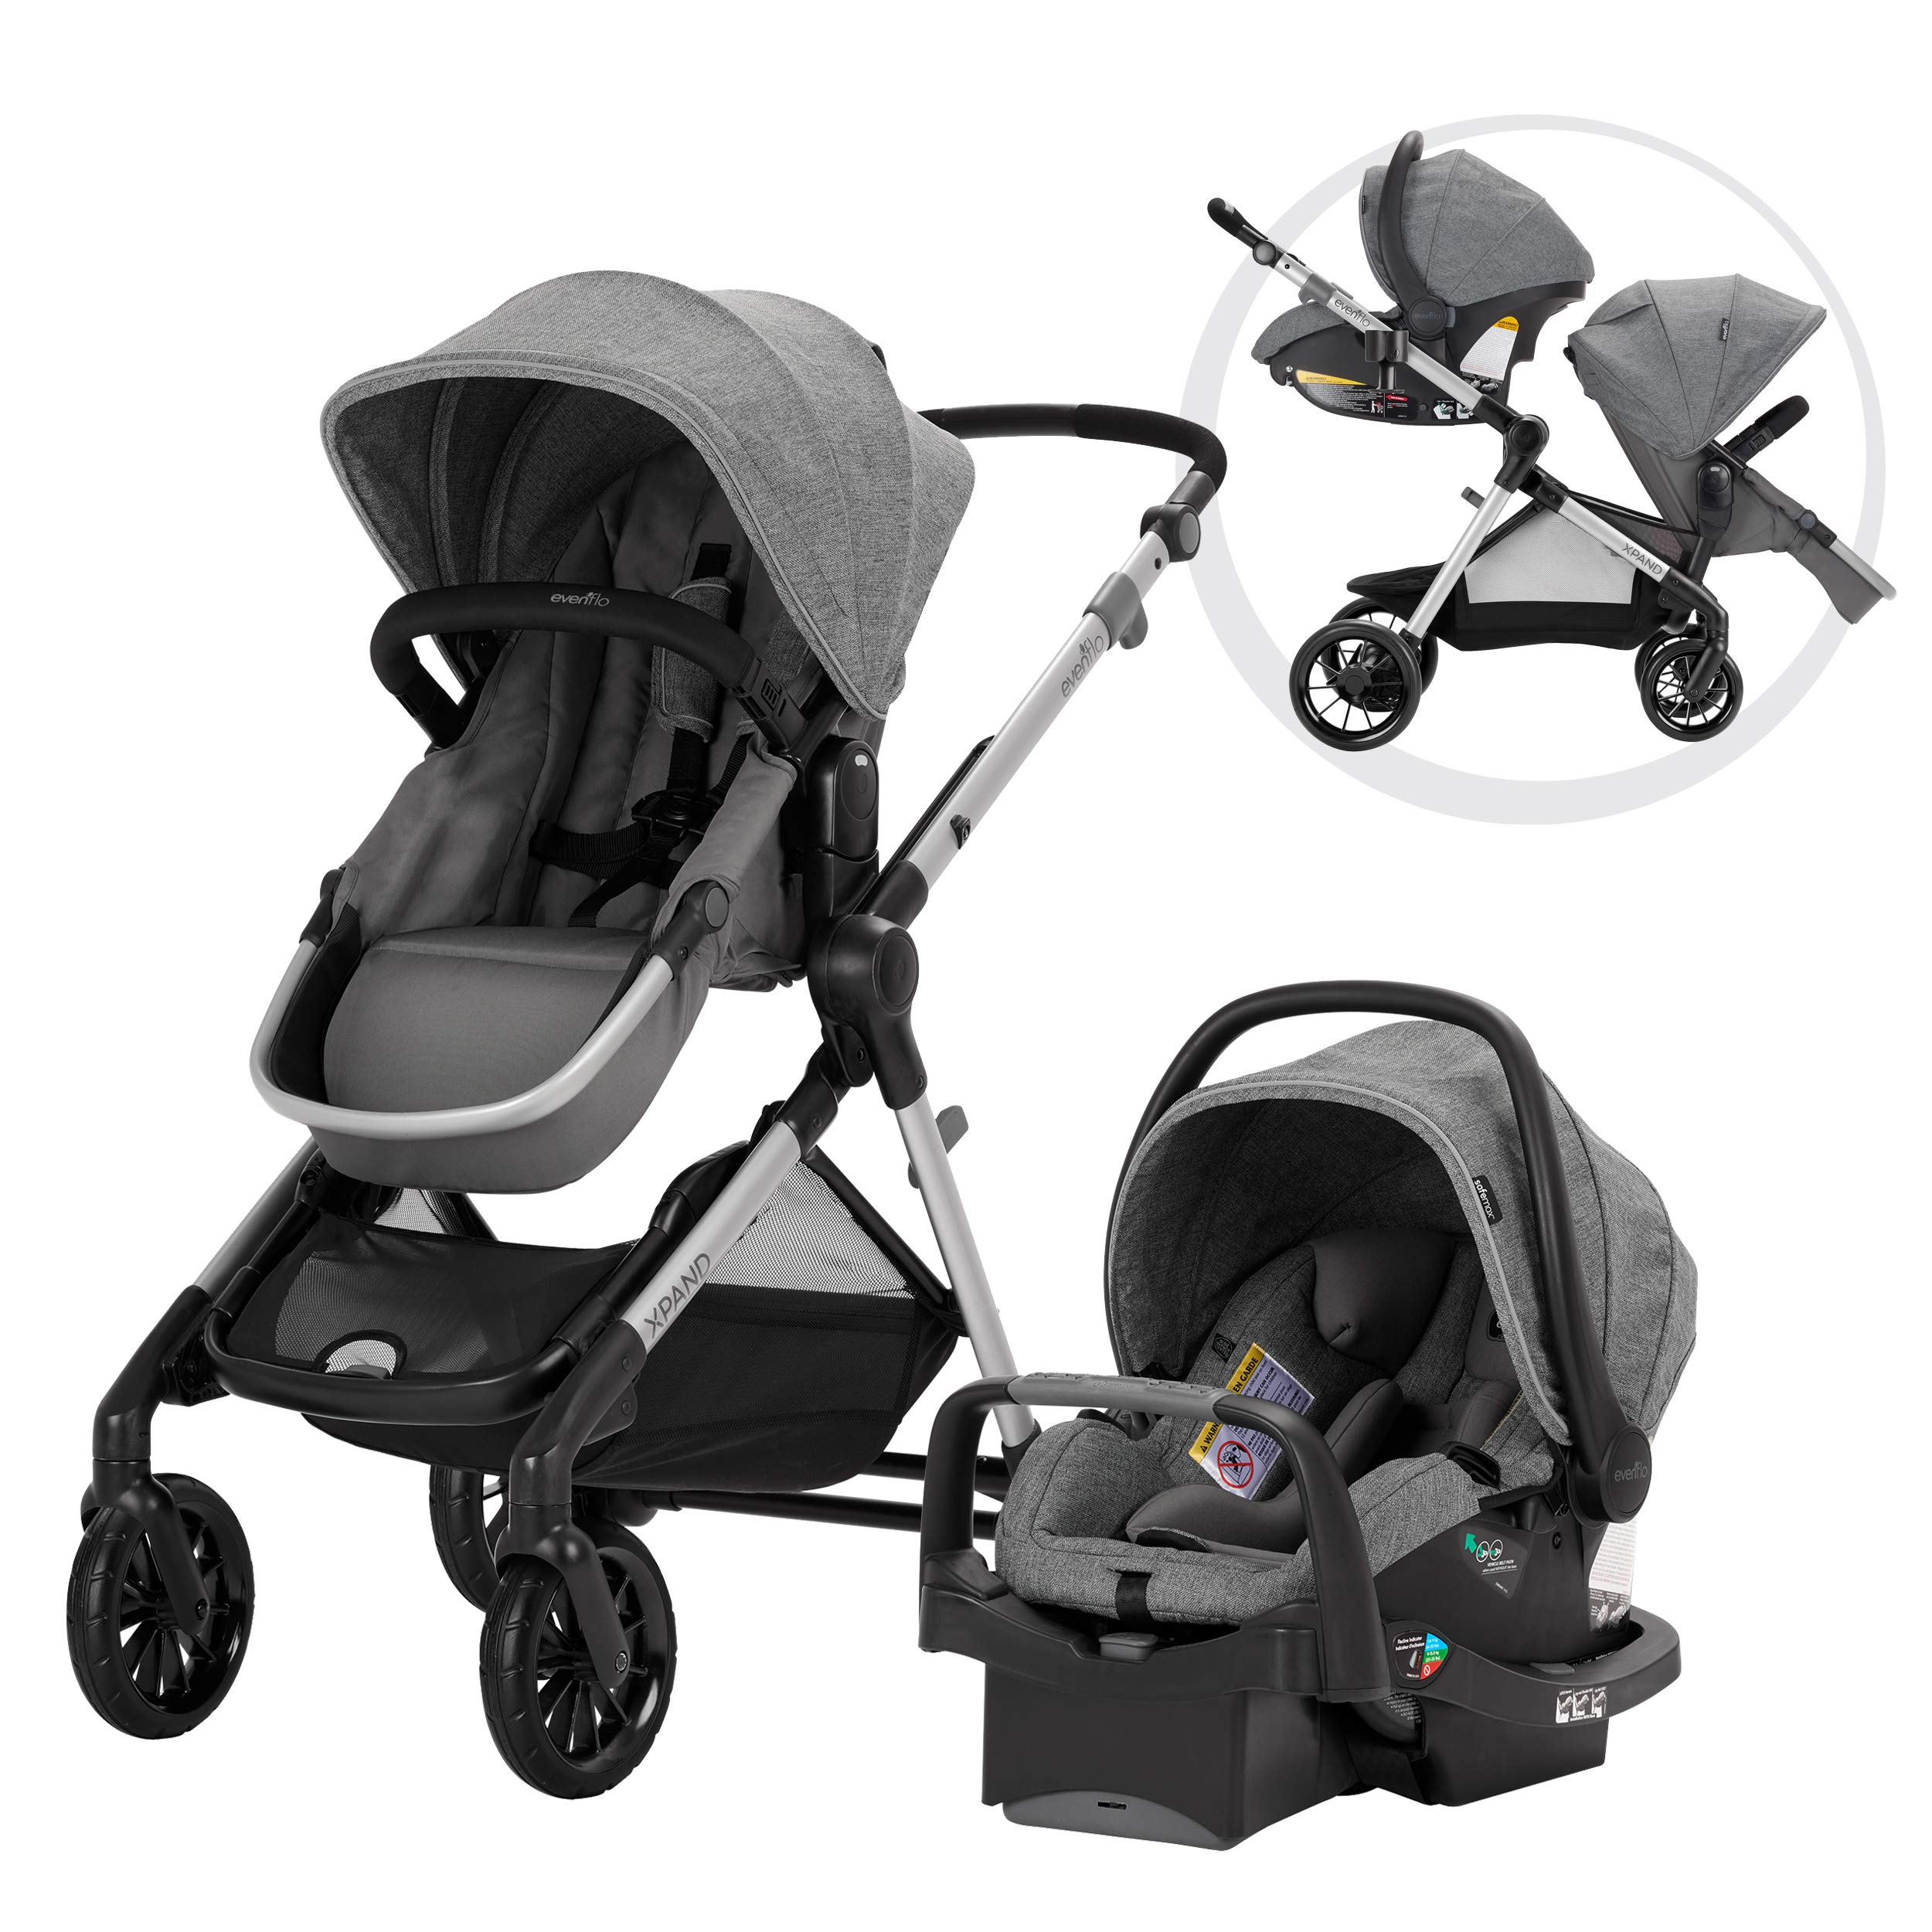 Evenflo Pivot Xpand Modular Travel System, Baby Stroller, Up to 22 Configurations, Extra-Large Storage, Single-to-Double Stroller, Durable Construction, Compact Folding Design, Percheron Gray by Evenflo